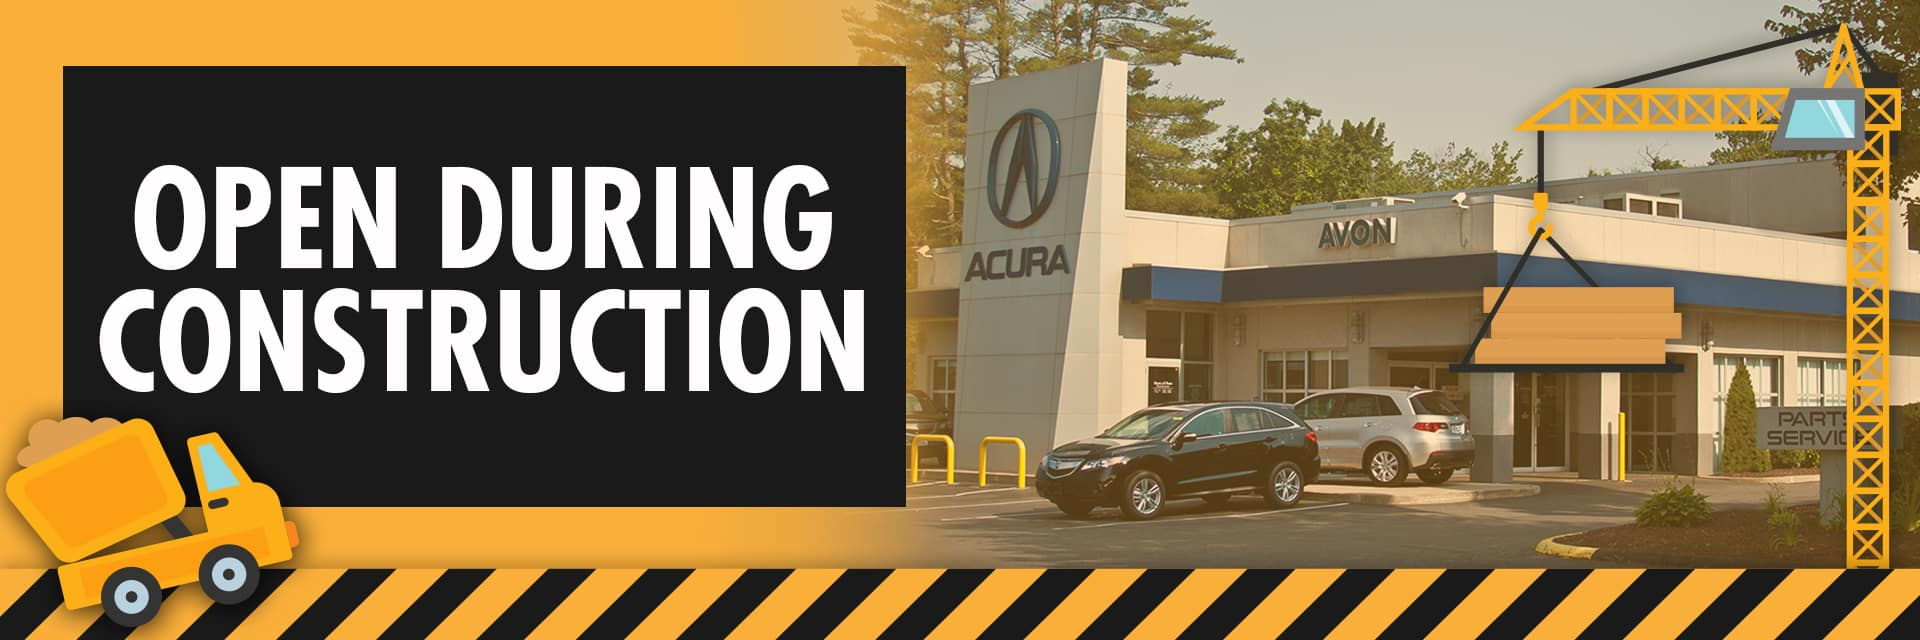 1920x640-Acura-Open-During-Construction-October-2019-Construction_unique